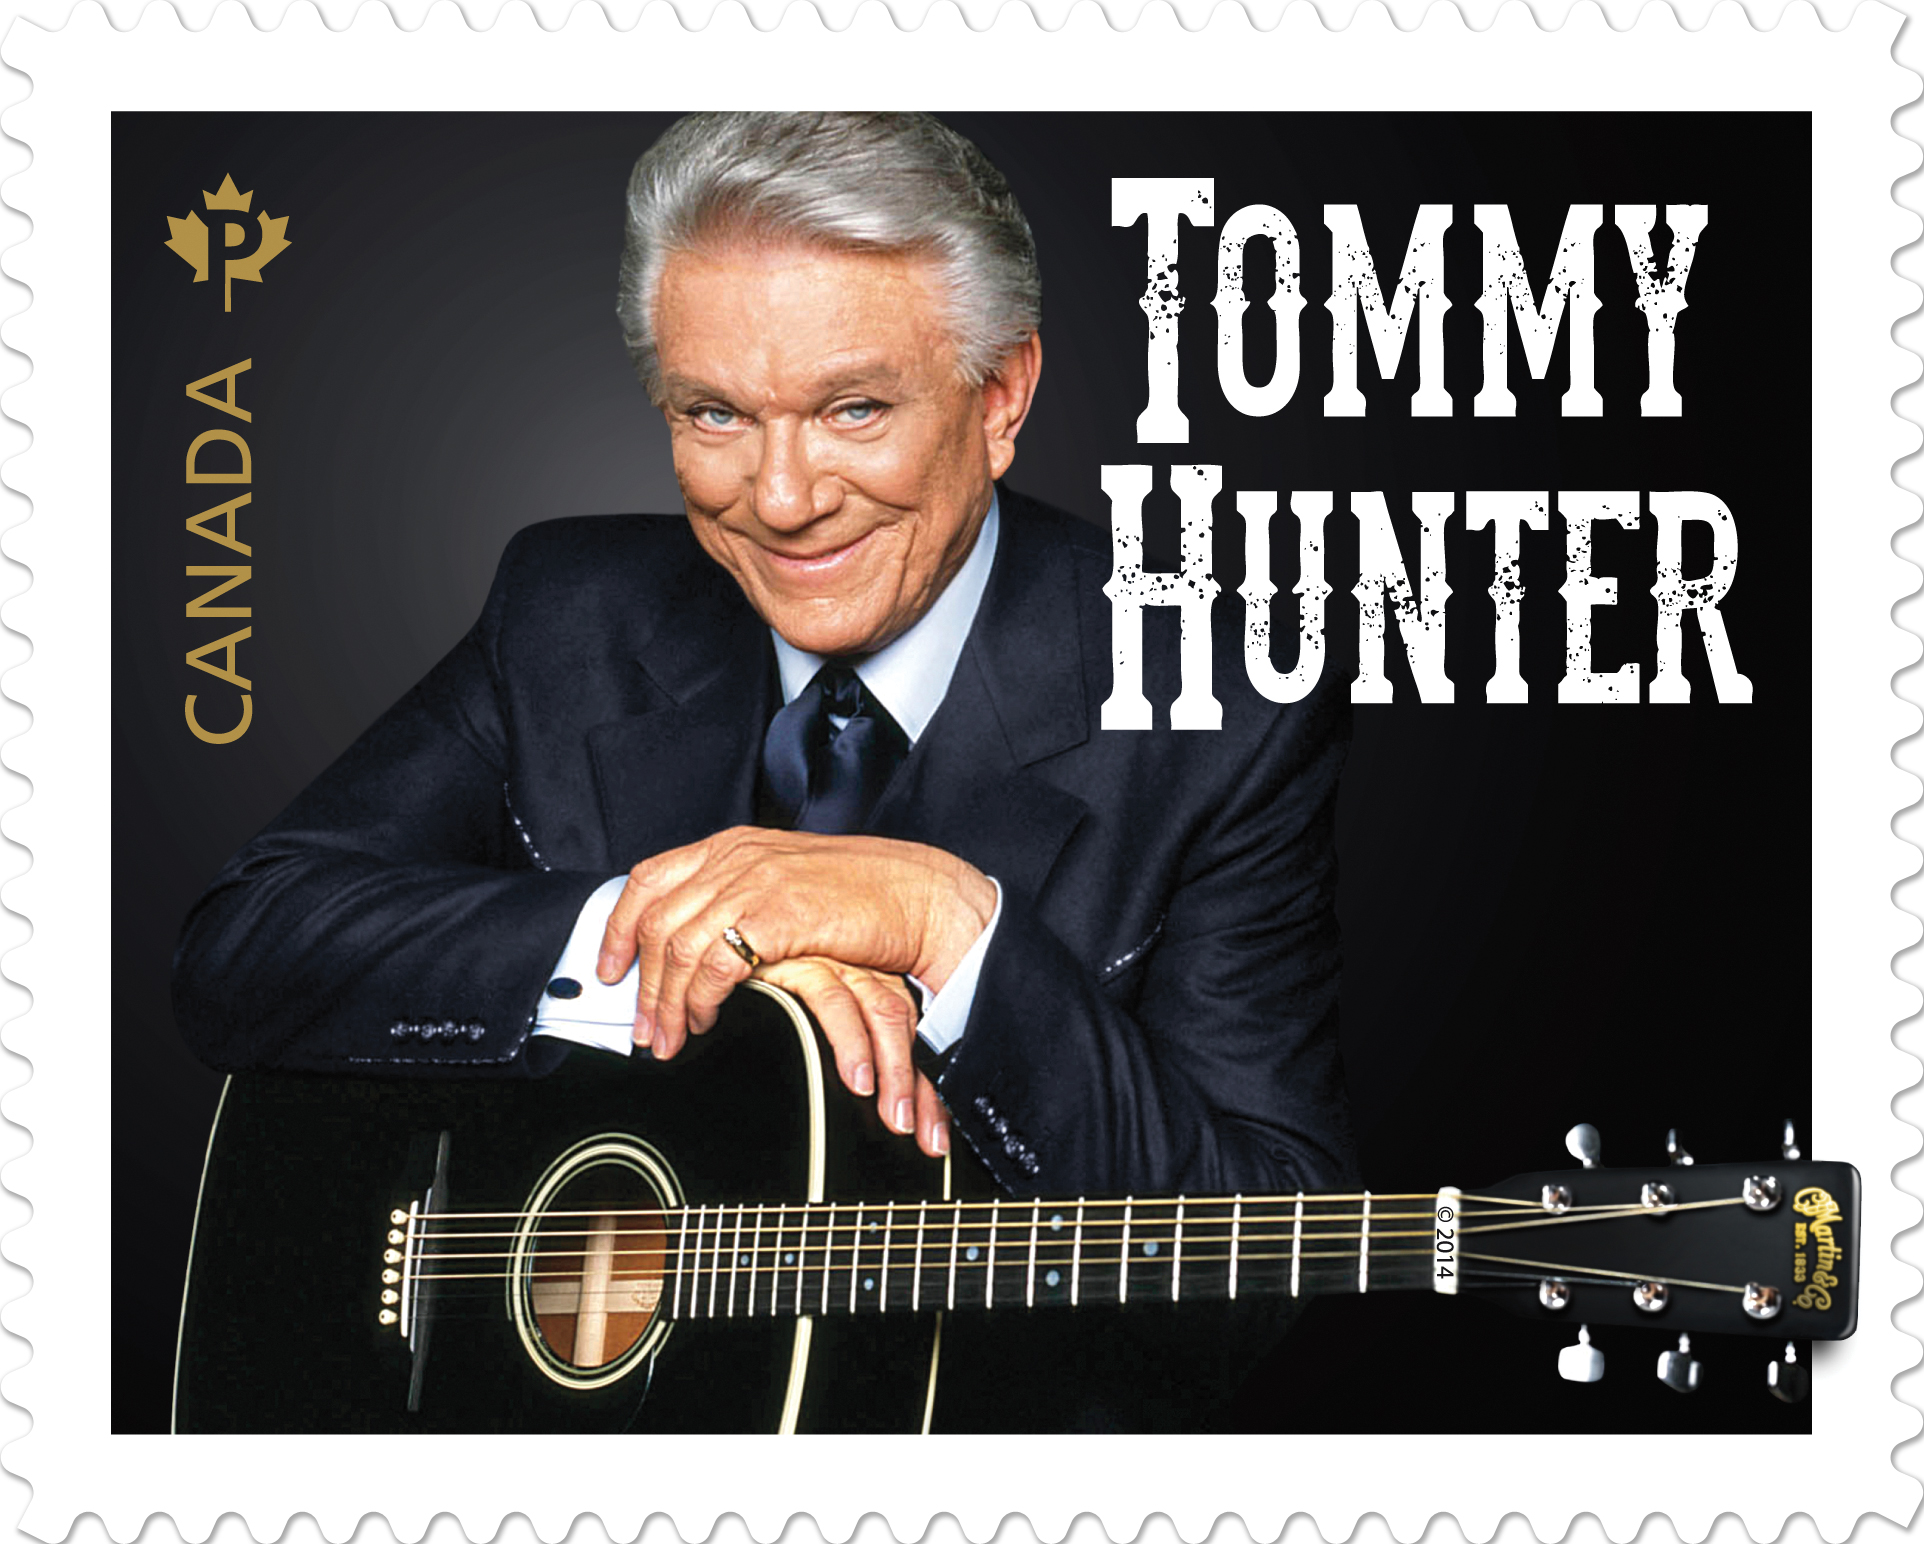 Tommy Hunter's official Canadian stamp